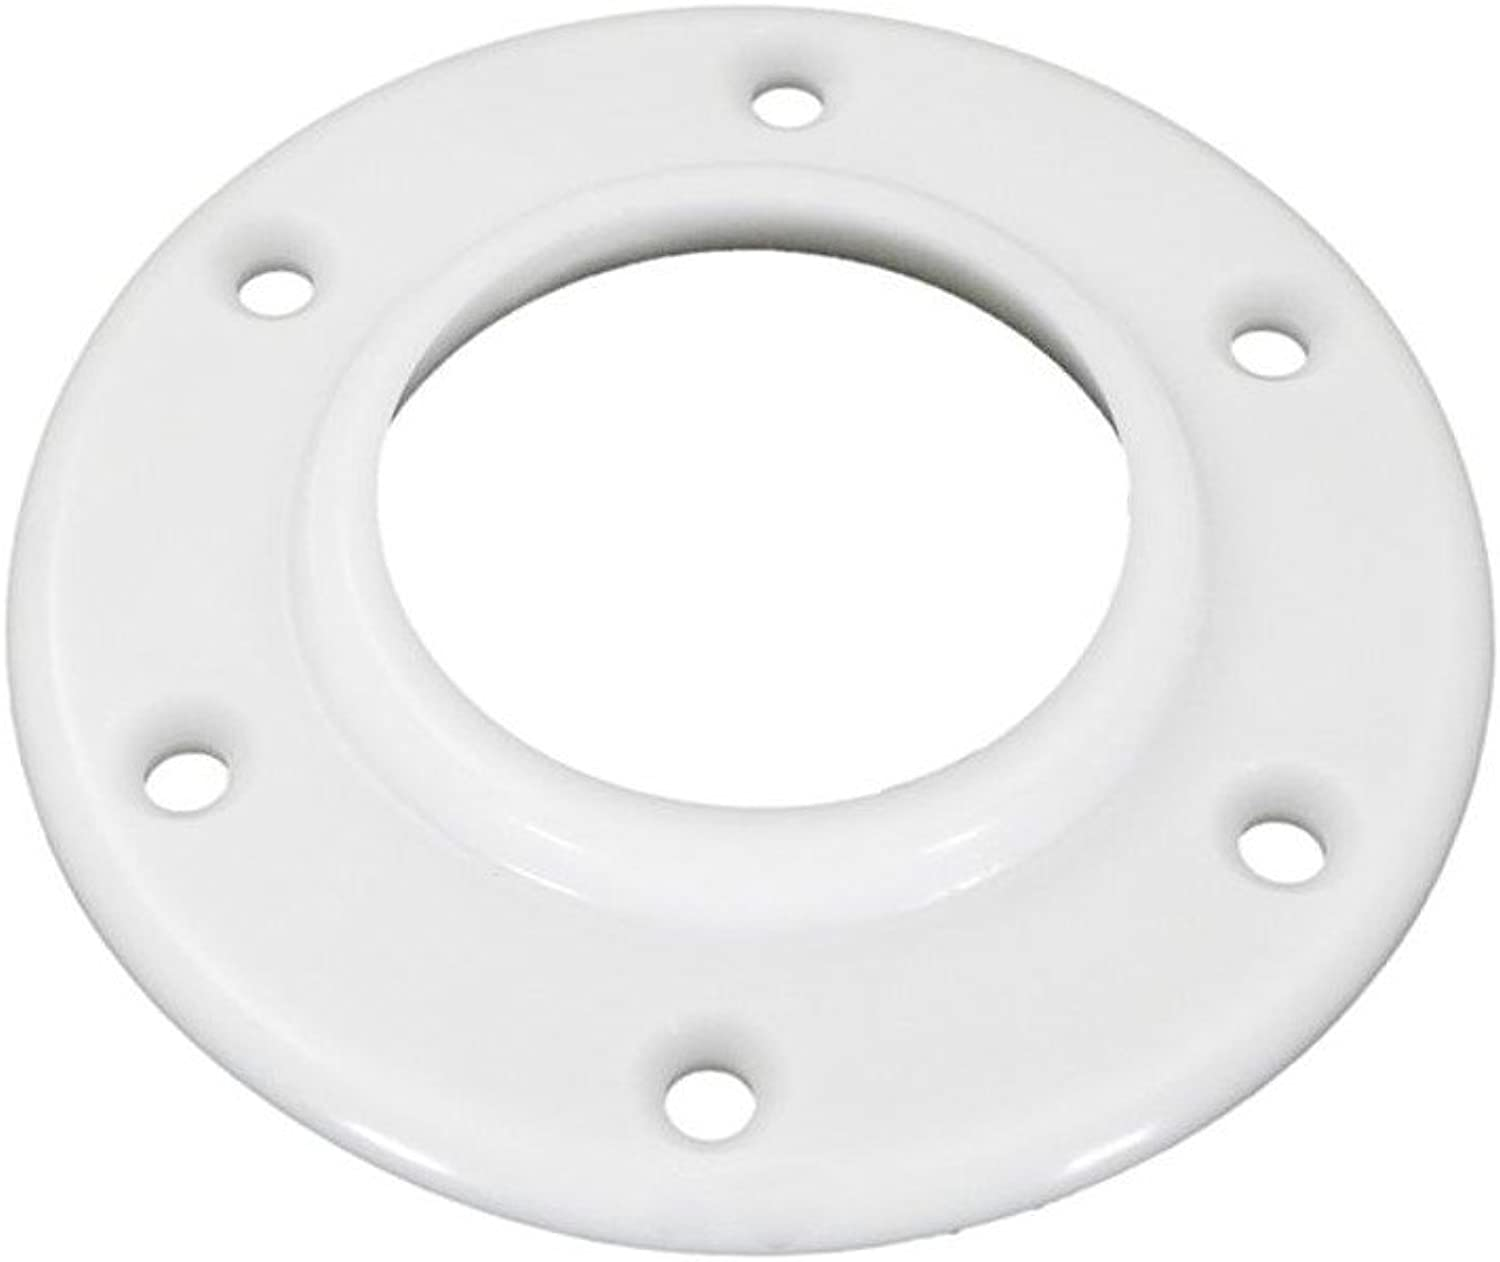 Speck Pumps 2306002009 Face Ring Cover Badustream